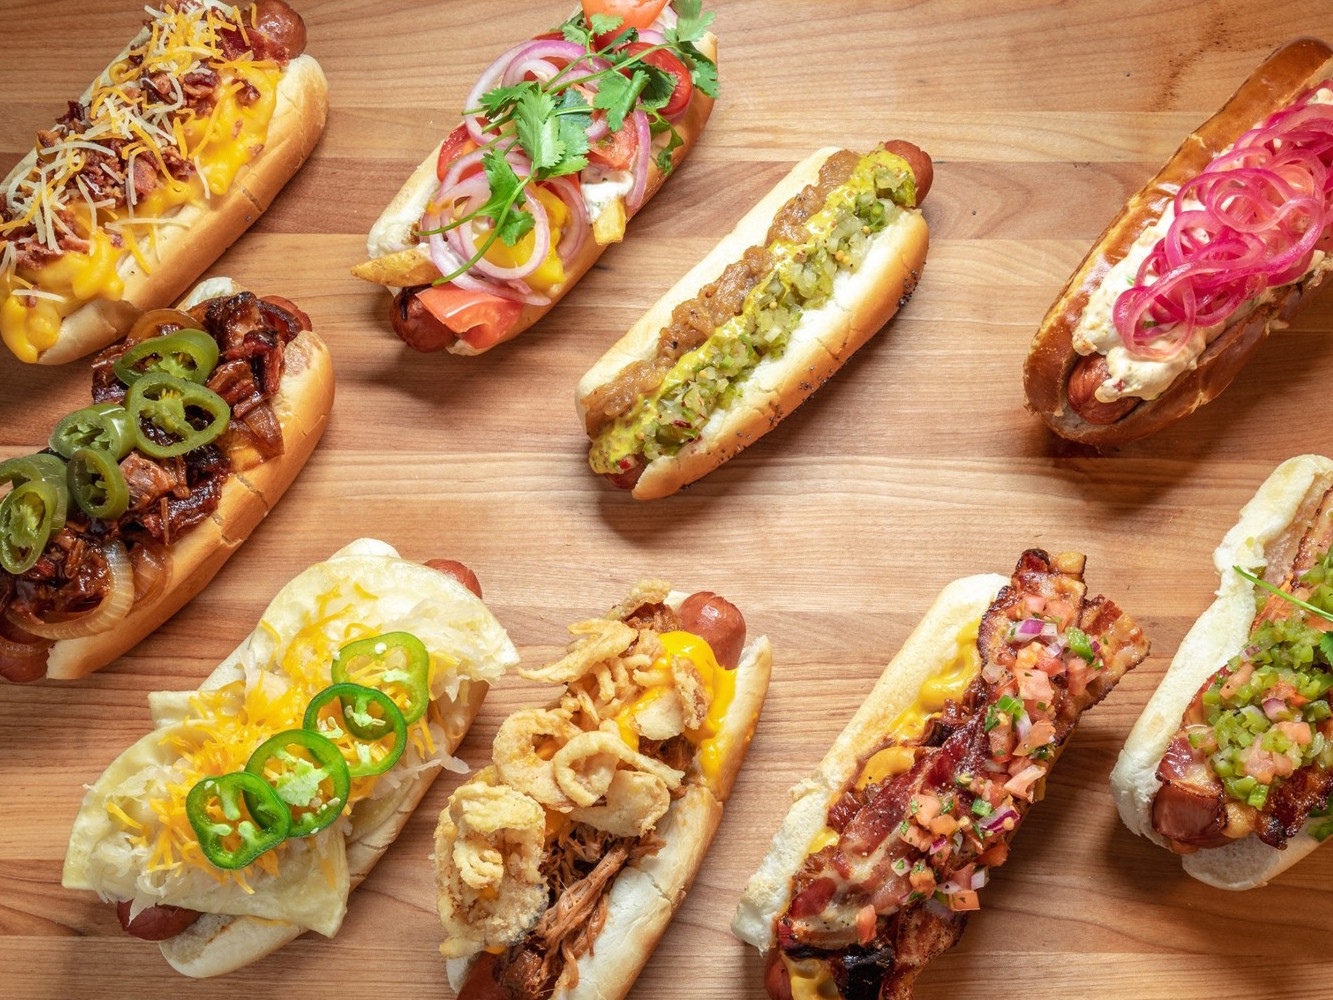 Celebrity Chefs and Hometown Hot Dogs Hit the Menus at NHL and NBA Arenas This Season